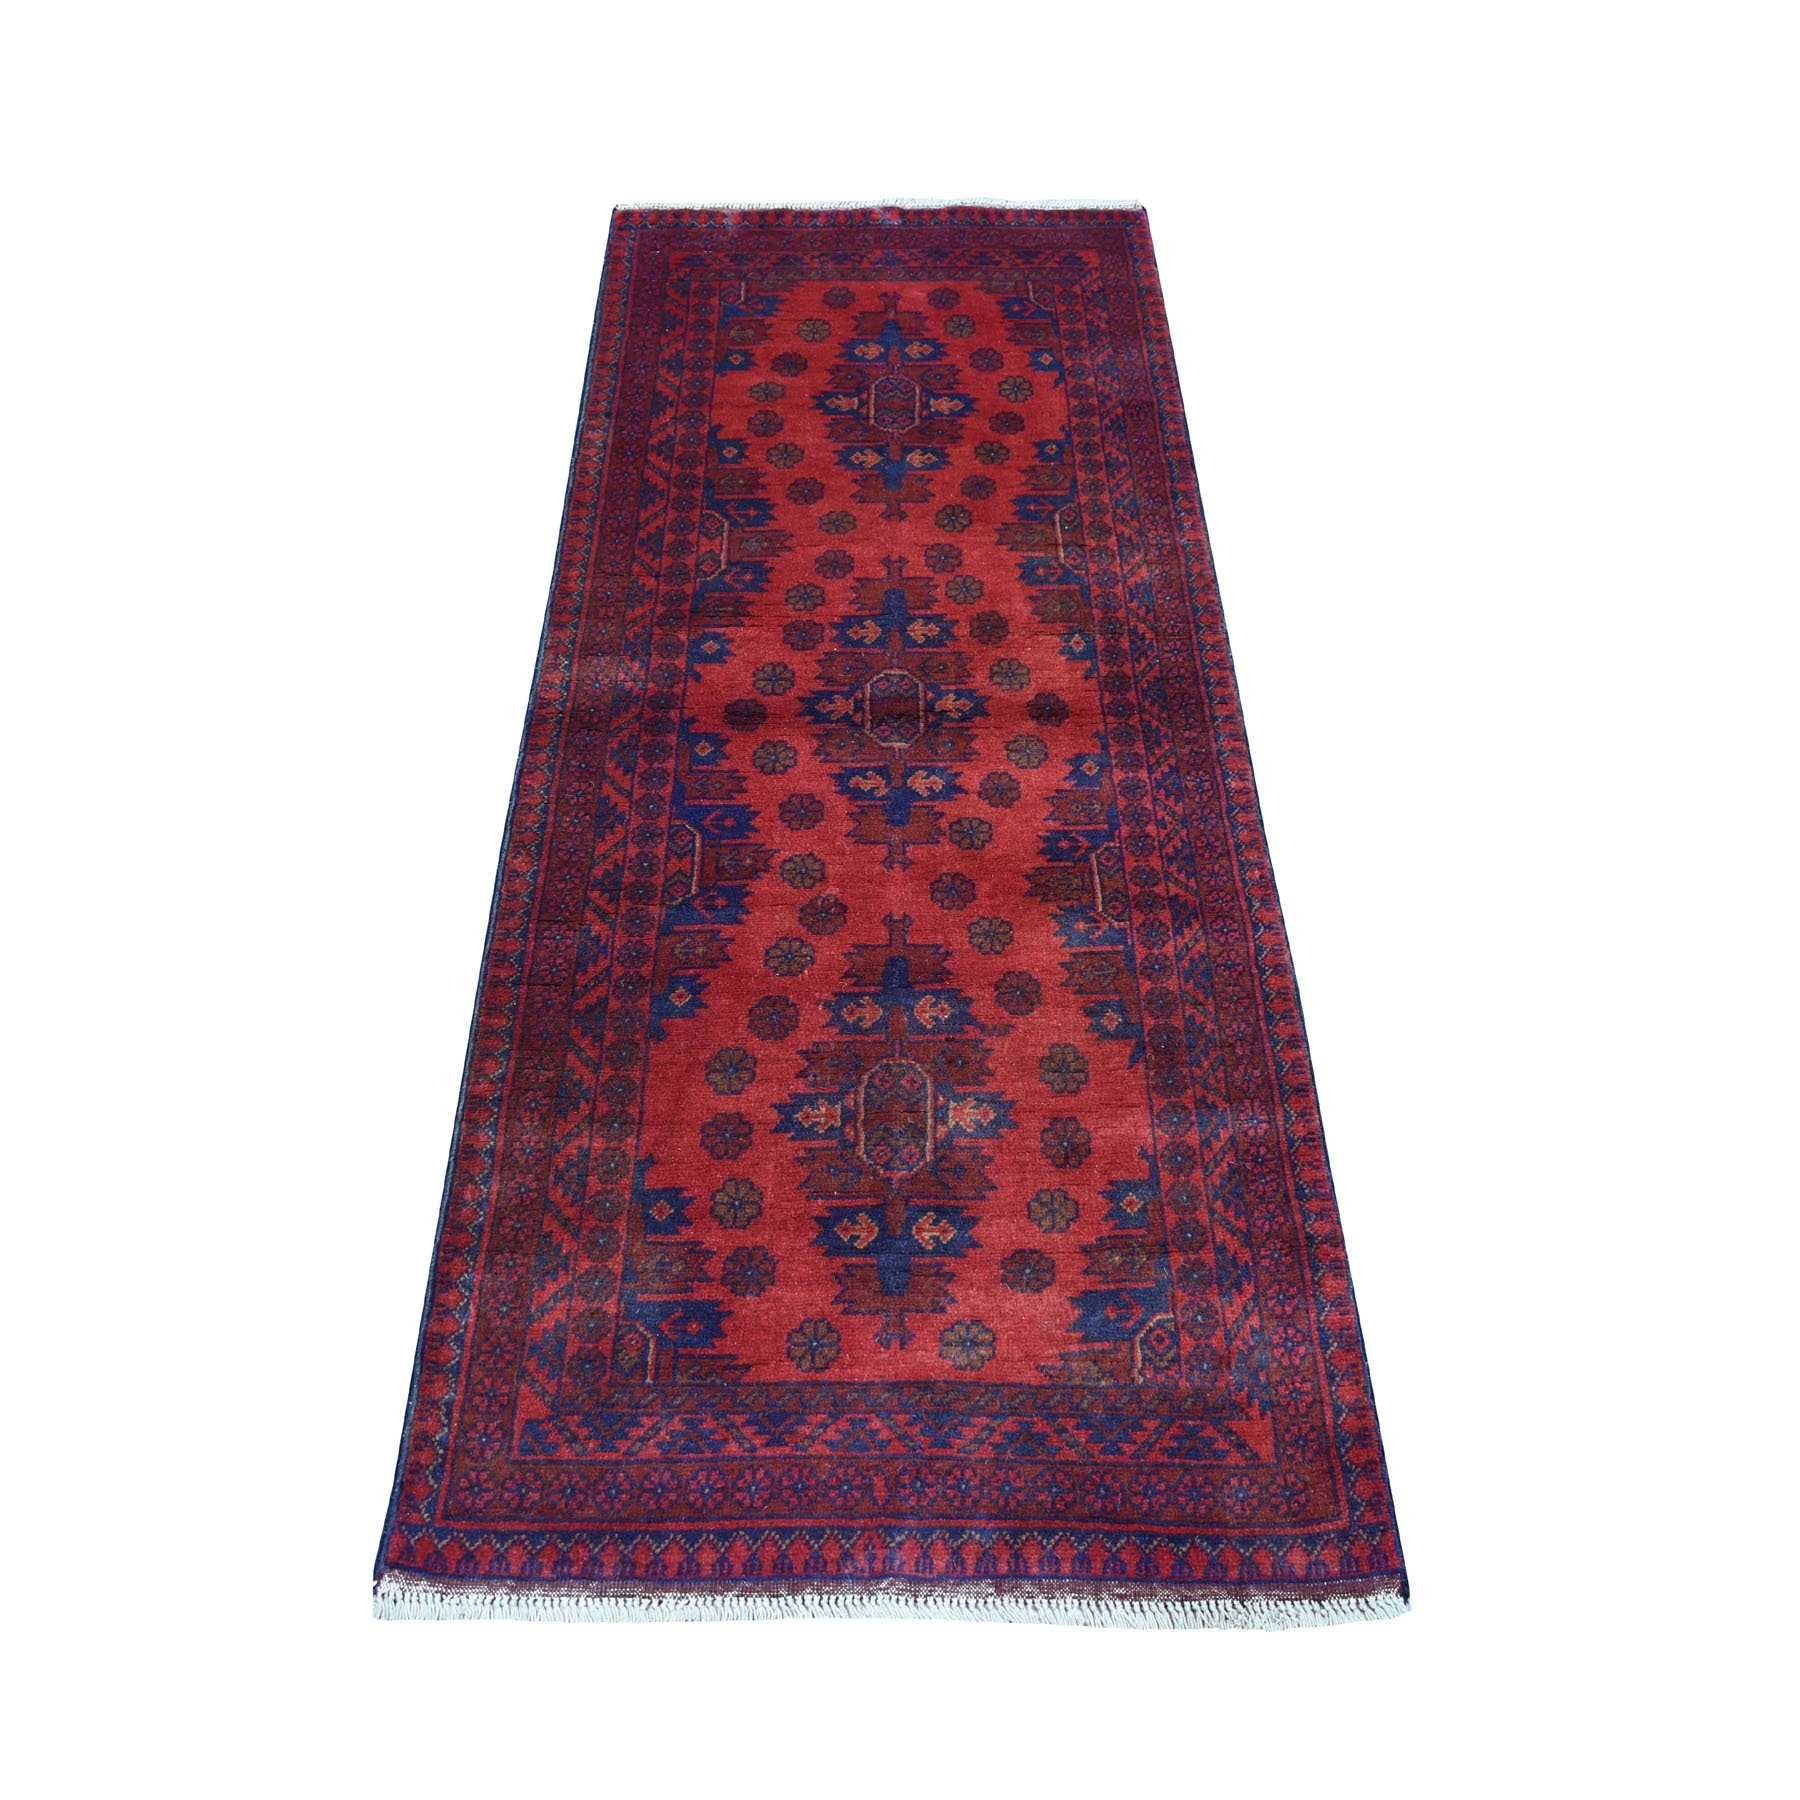 "2'6""X6'1"" Deep And Saturated Red Geometric Afghan Andkhoy Runner Pure Wool Hand Knotted Oriental Rug moaecee7"